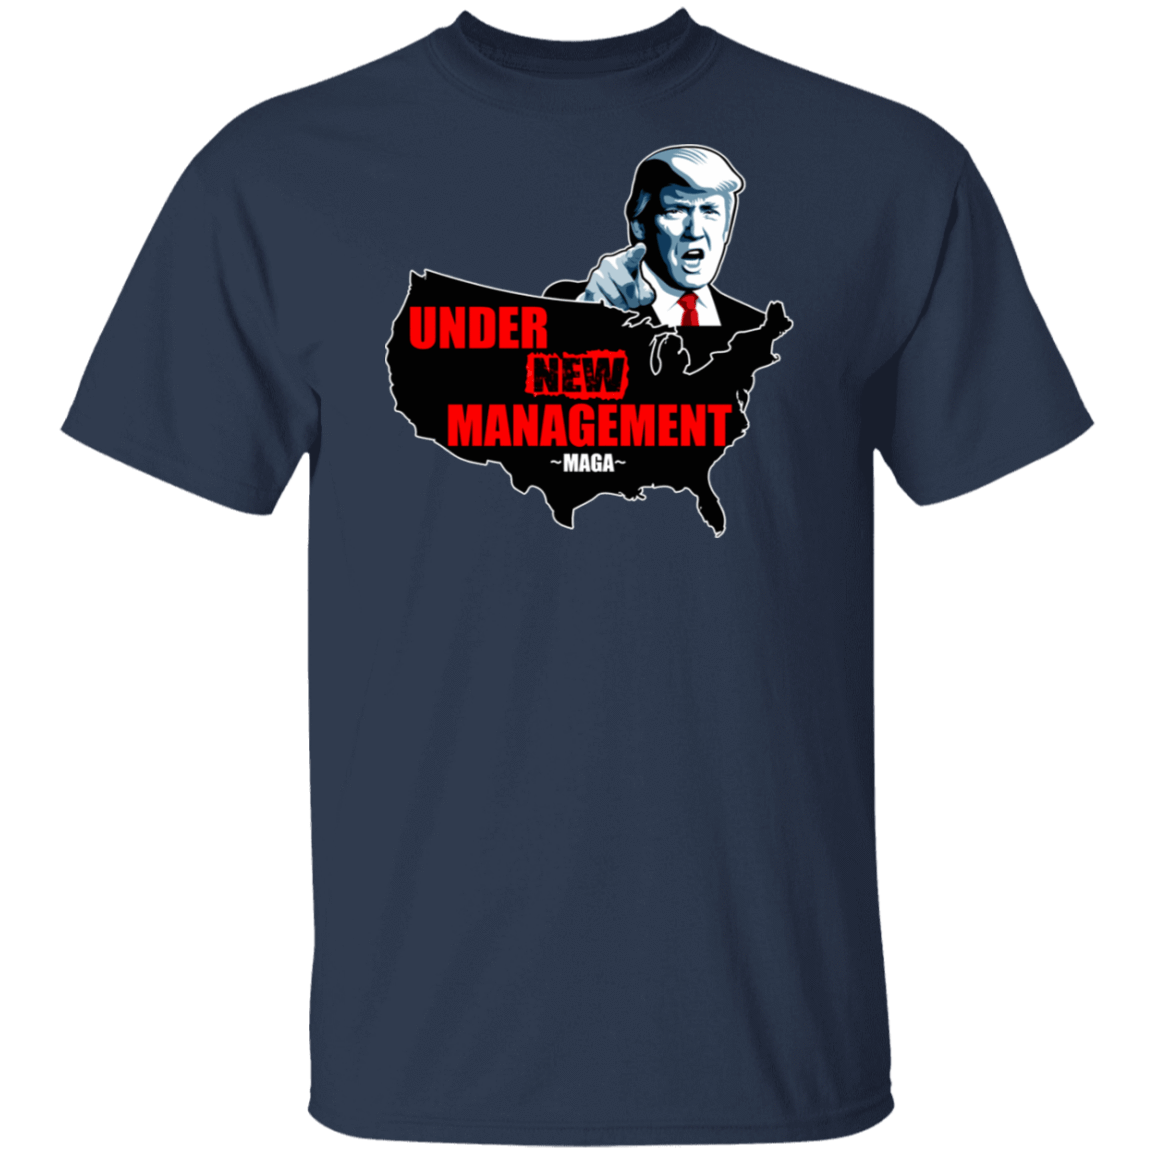 Under New Management #Maga T-Shirts, Hoodies, Tank 1049-9966-80393639-48248 - Tee Ript